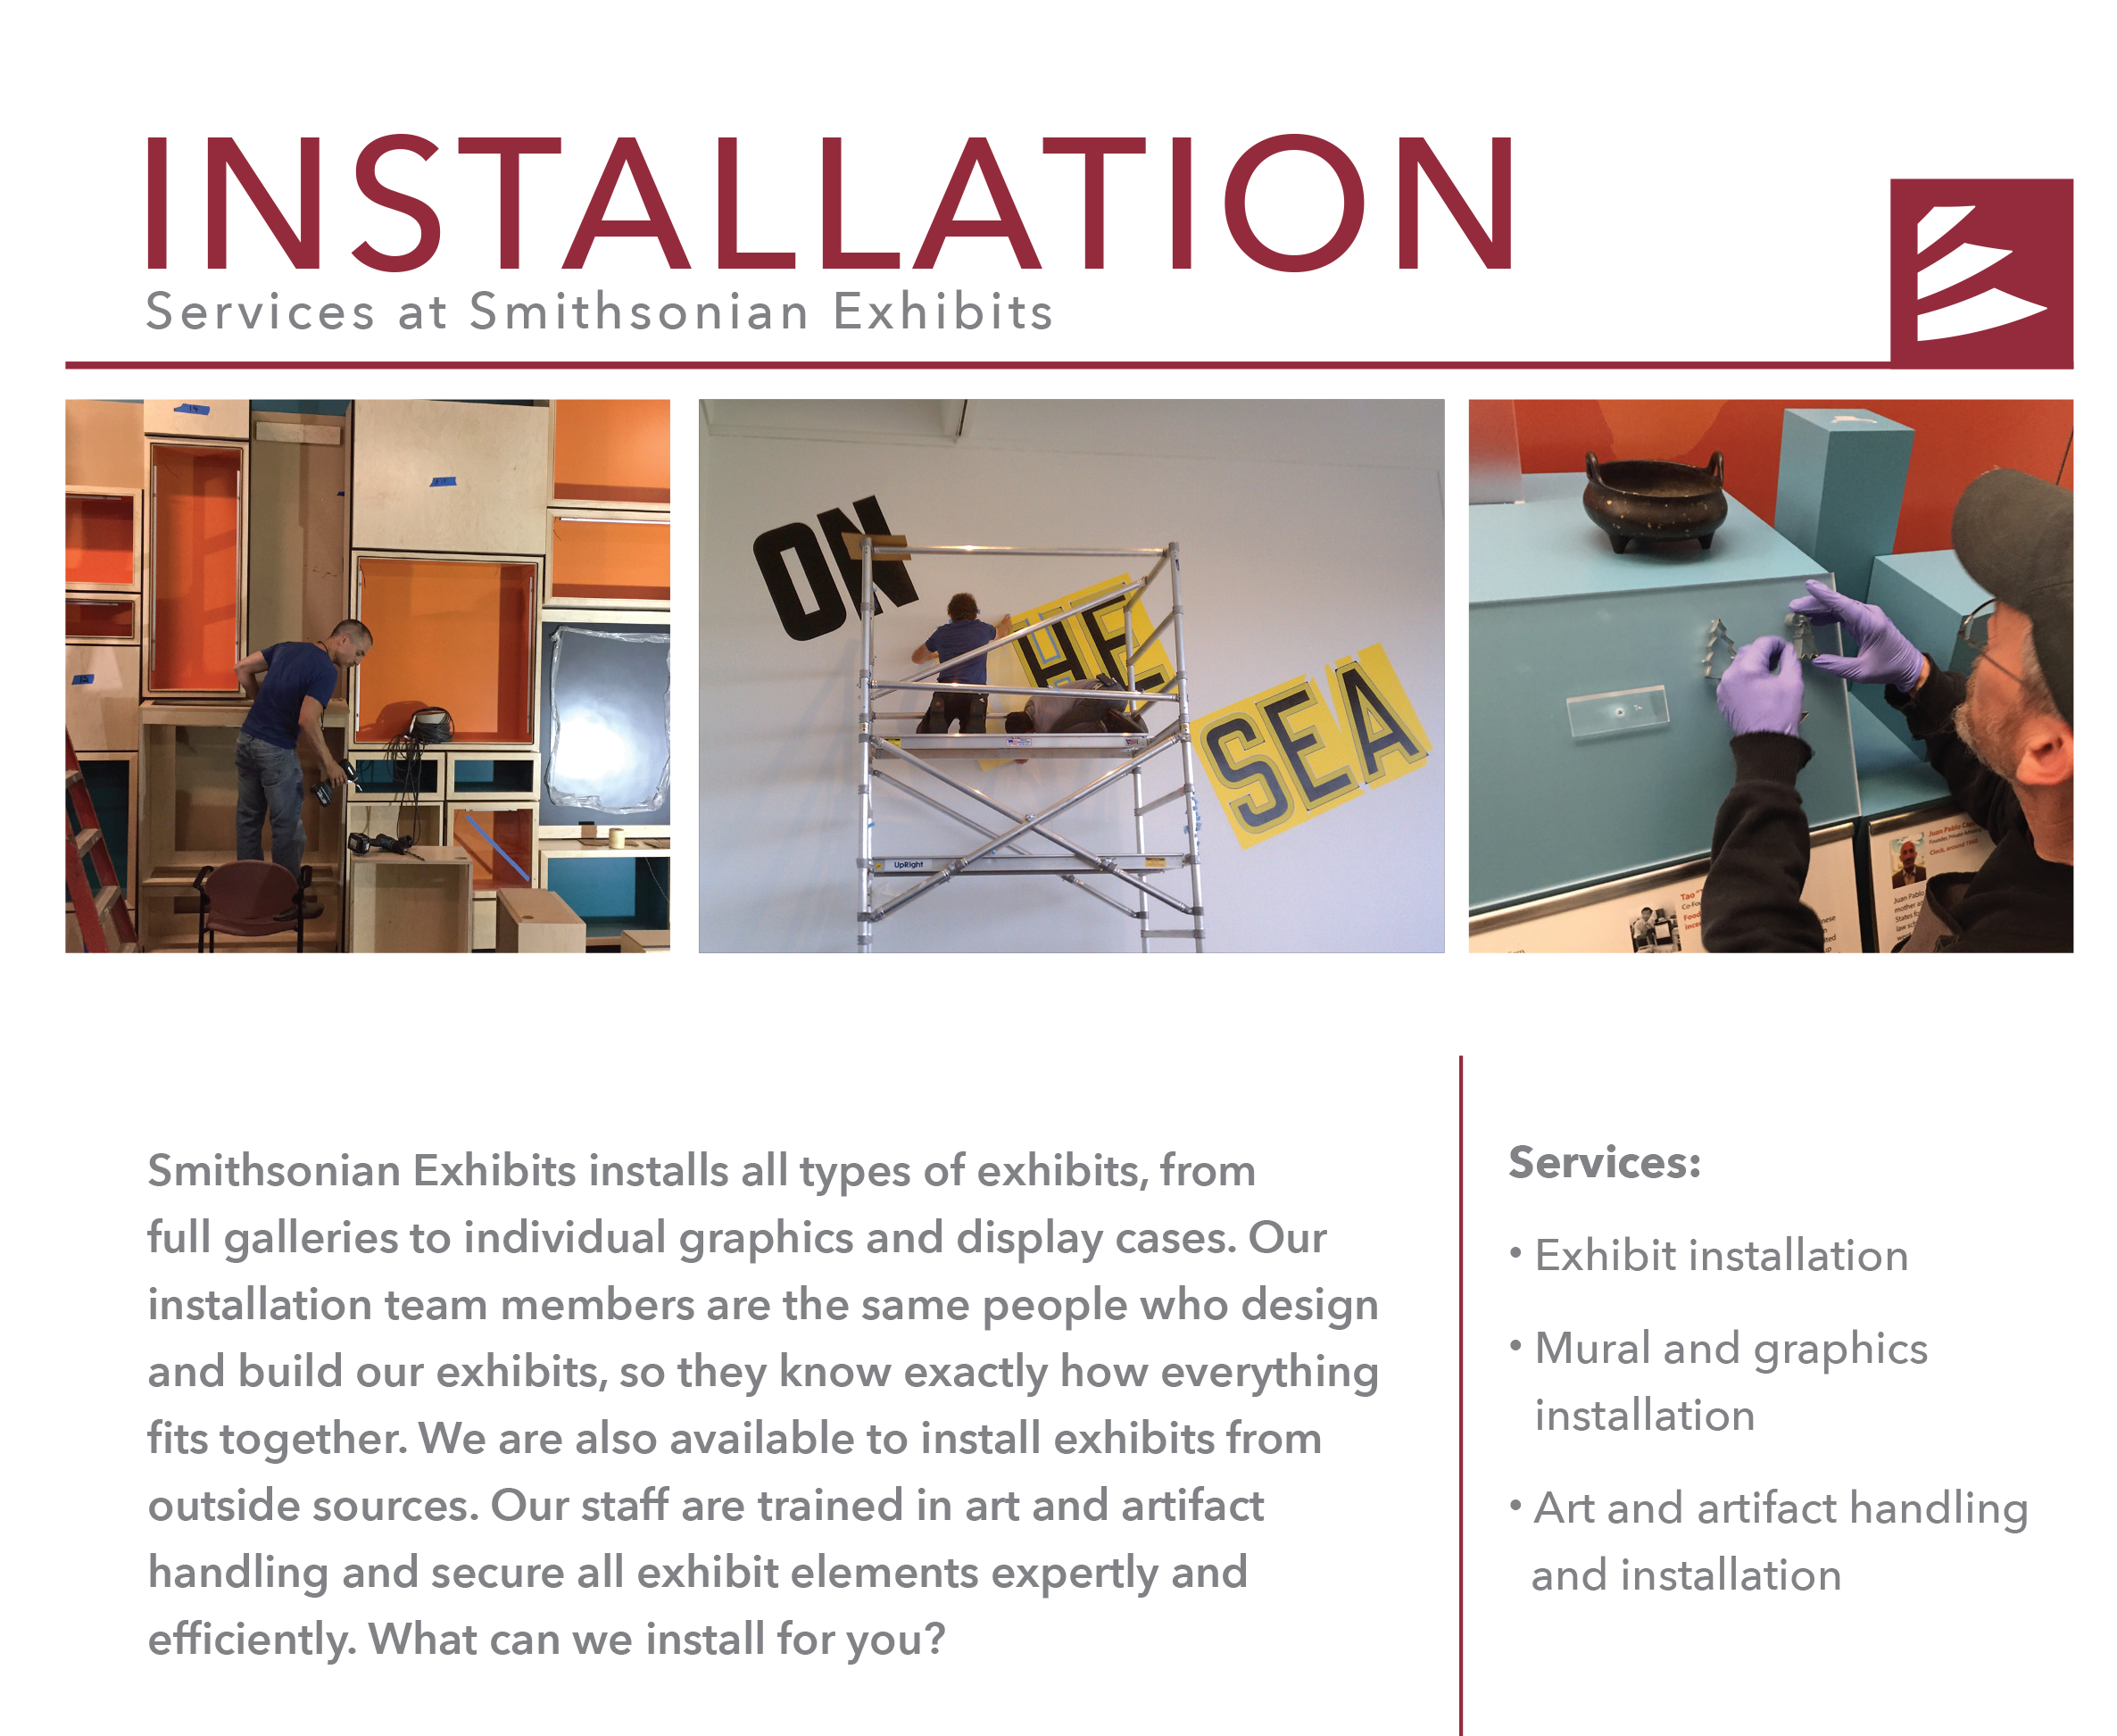 Smithsonian Exhibits installs all types of exhibits, from full galleries to individual graphics and display cases. Our installation team members are the same people who design and build our exhibits, so they know exactly how everything fits together. We are also available to install exhibits from outside sources. Our staff are trained in art and artifact handling and secure all exhibit elements expertly and efficiently. What can we install for you?